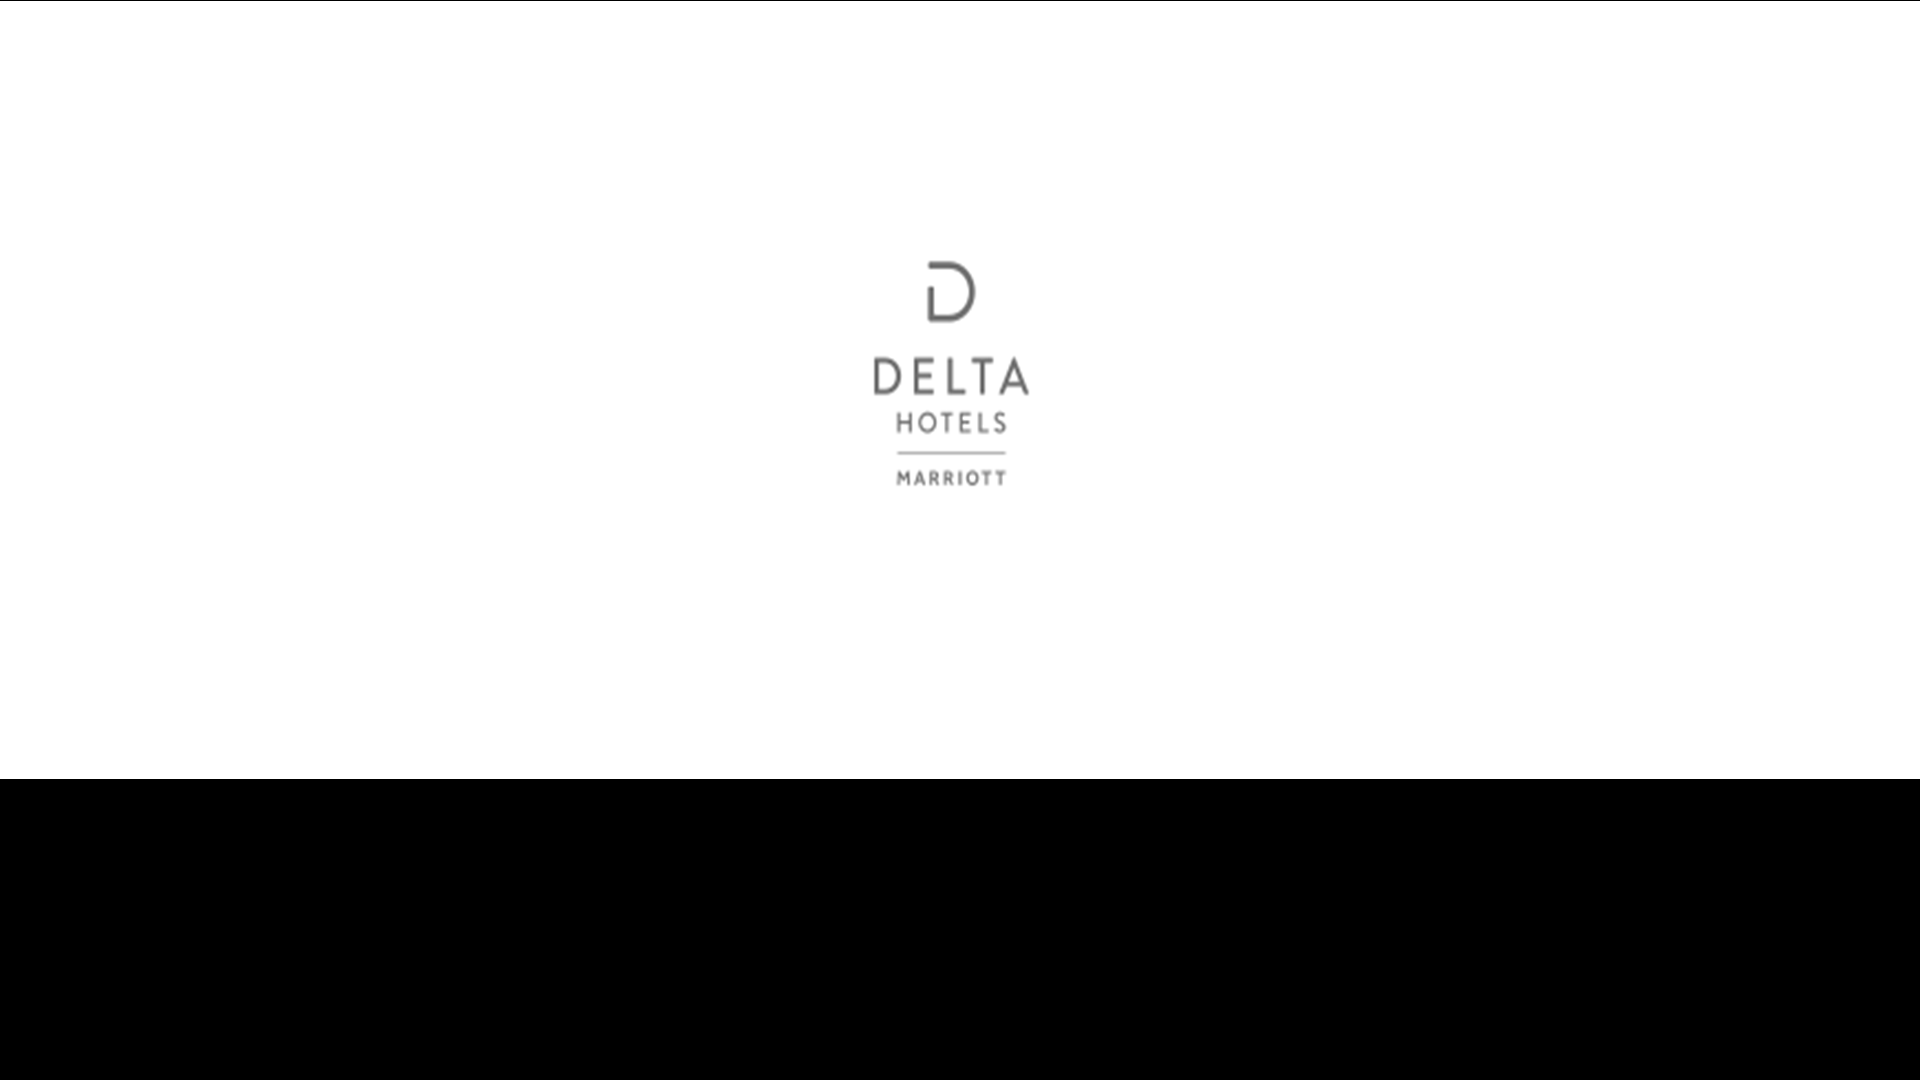 Utica NY 1 nt for two, Delta Hotels Utica $250 value